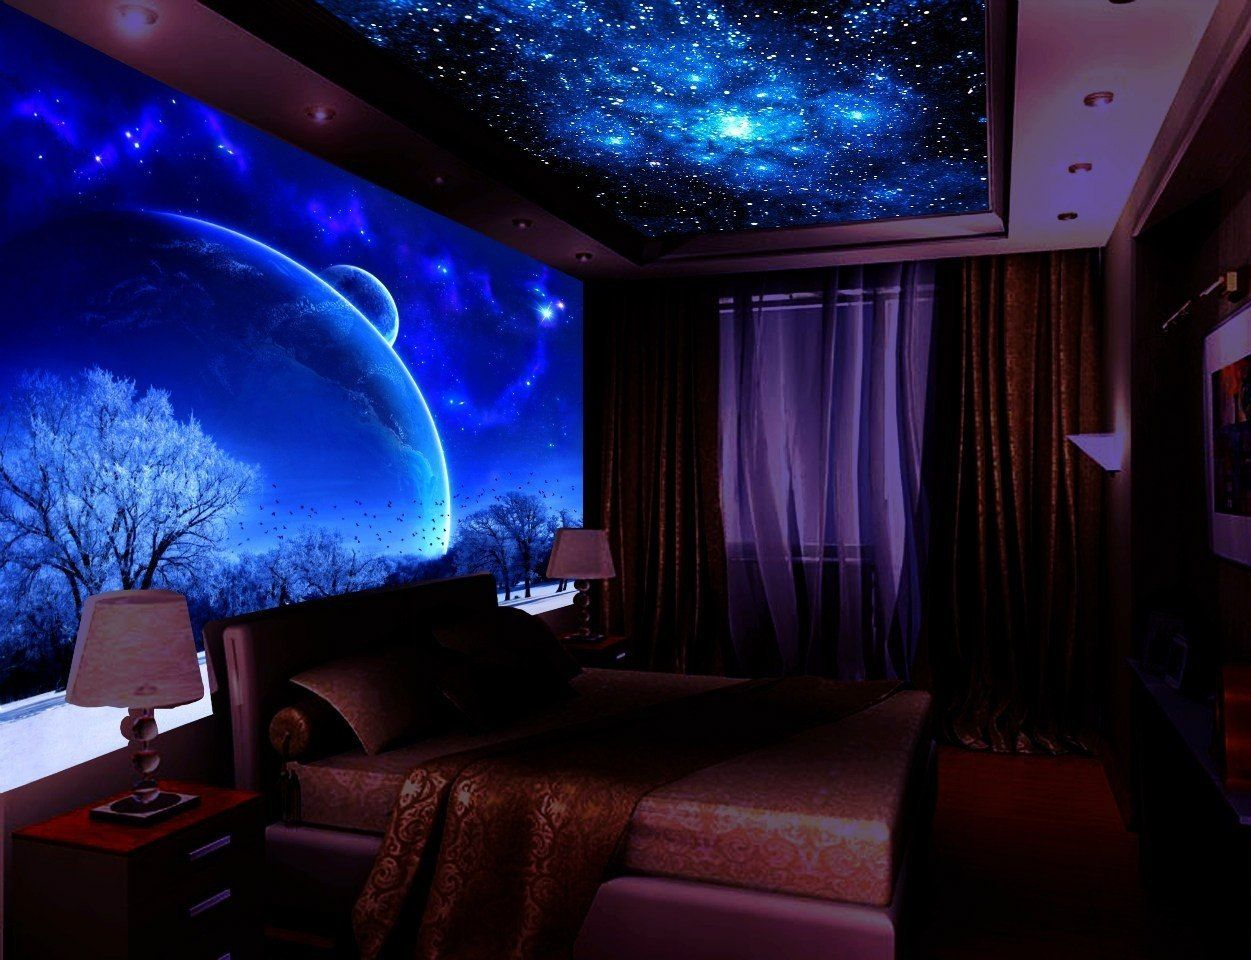 glow in the dark paint his room pinterest. Black Bedroom Furniture Sets. Home Design Ideas